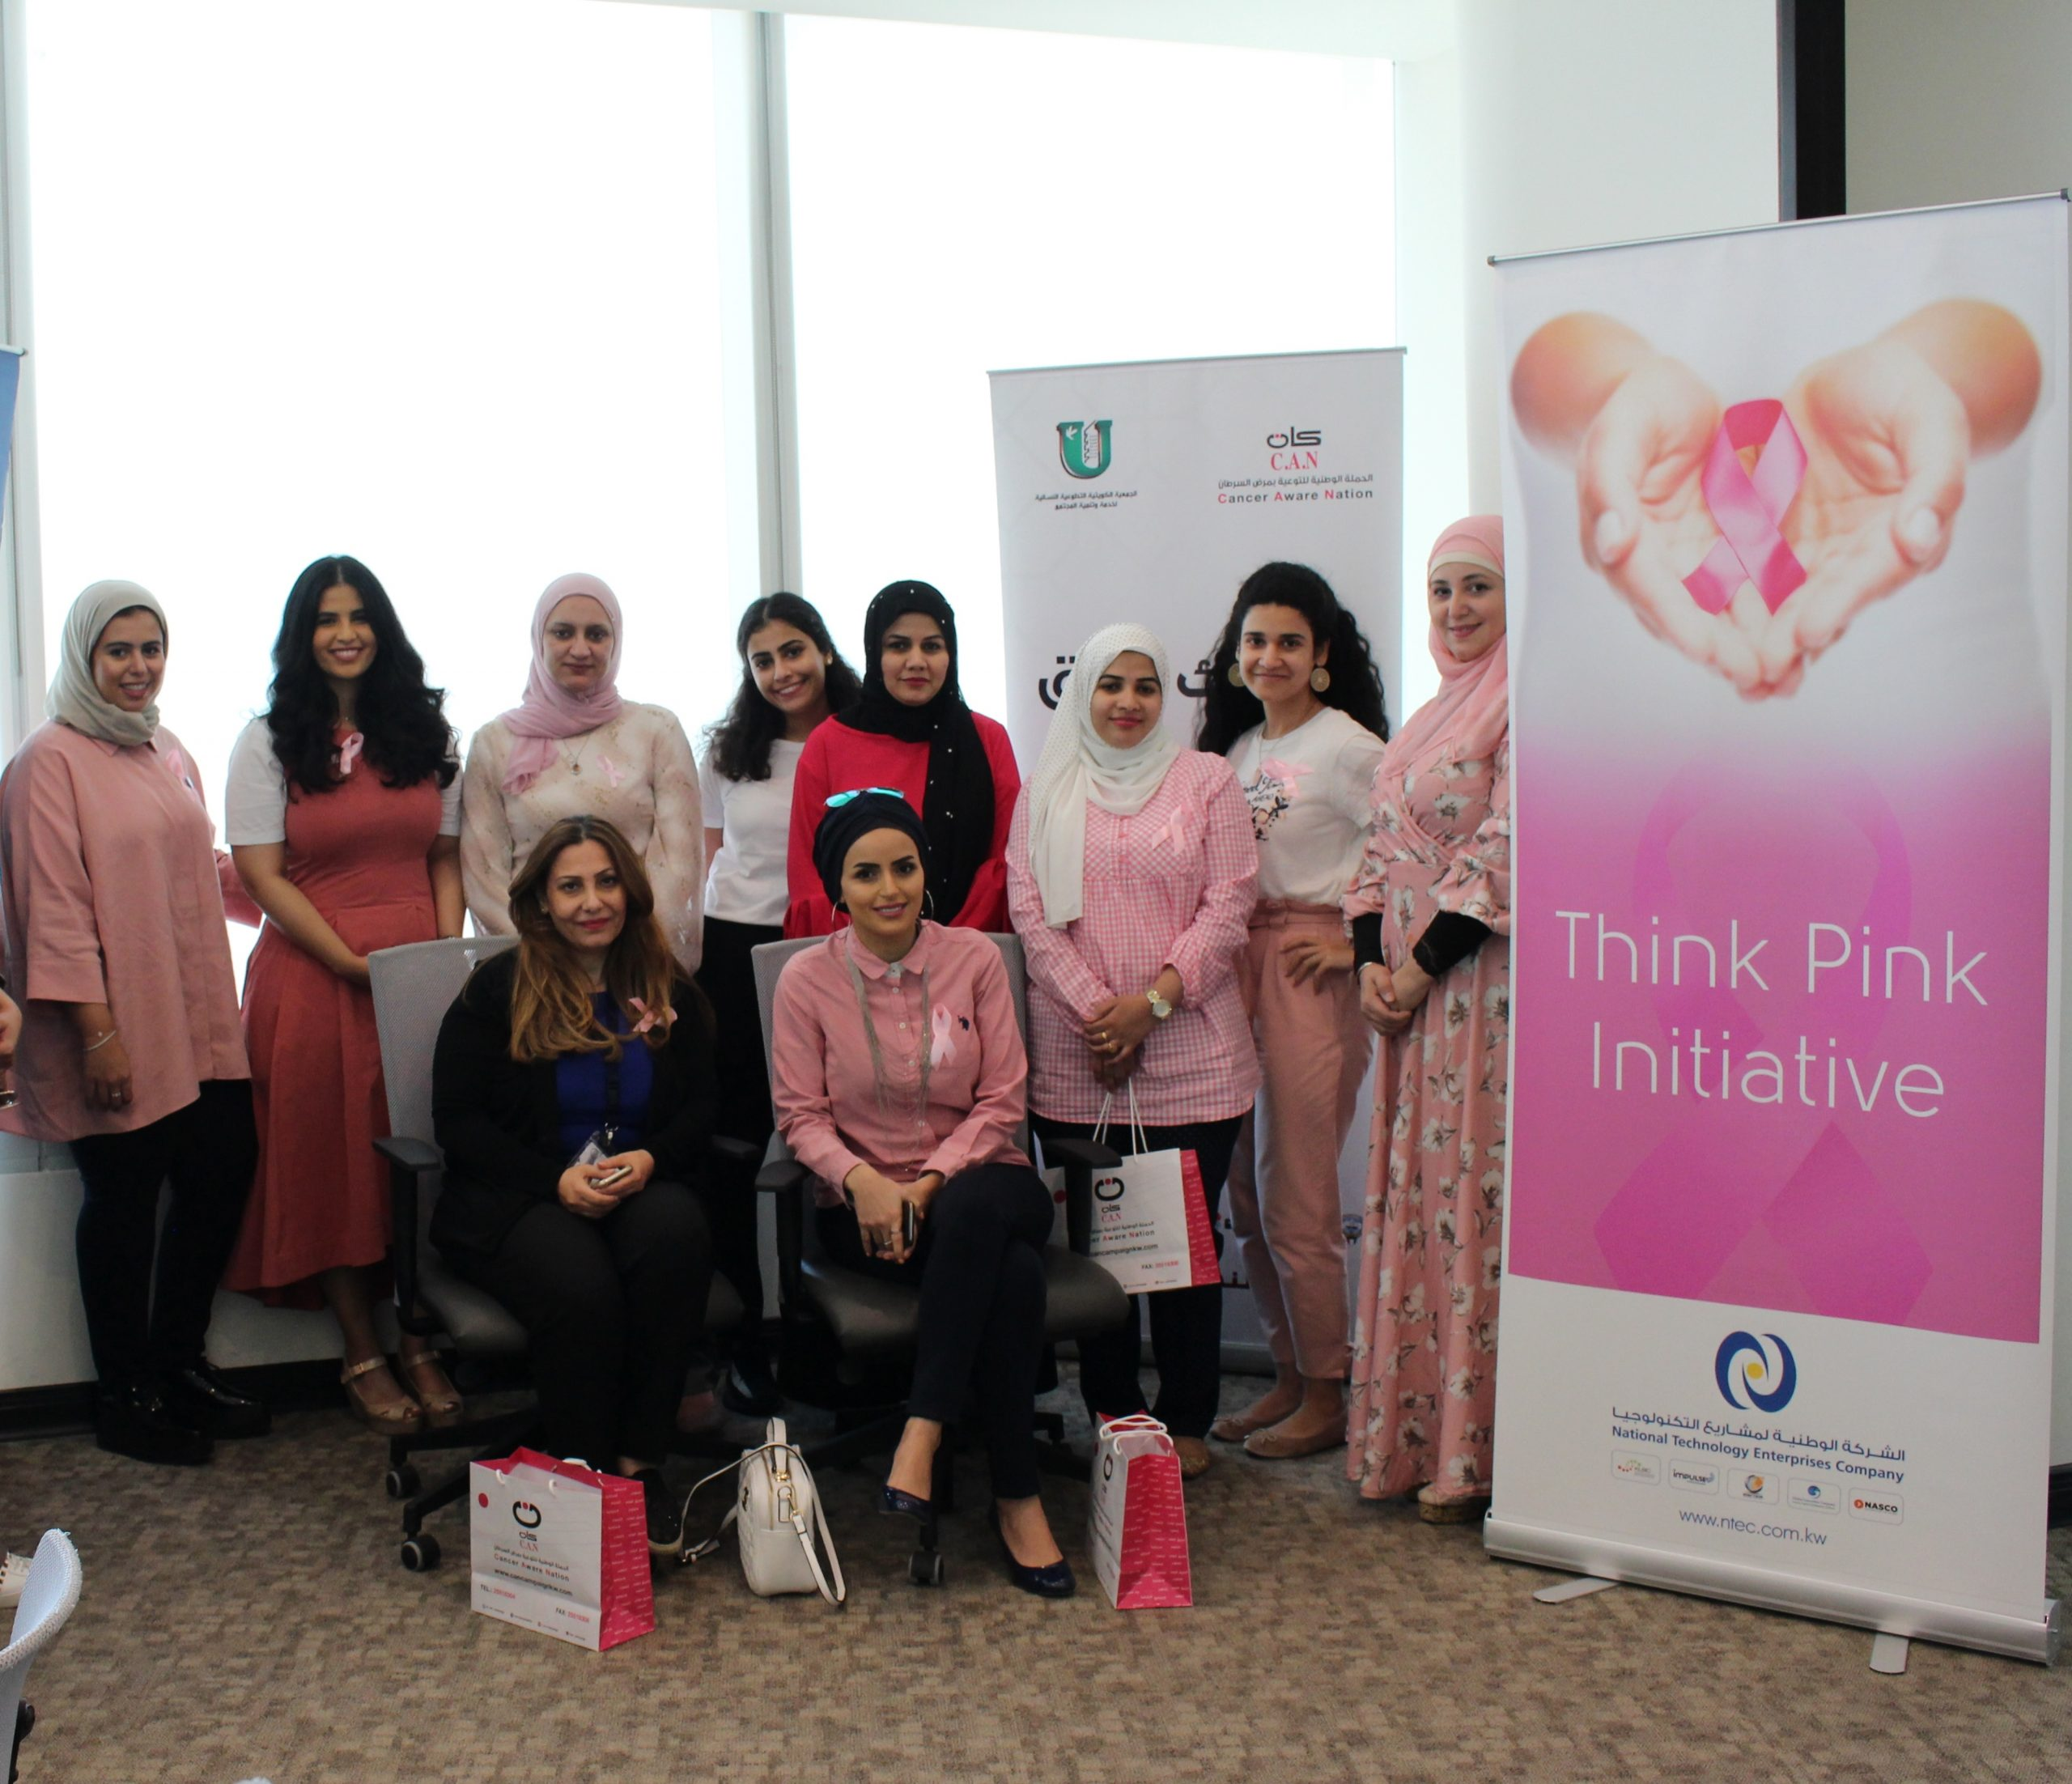 National Technology Enterprises Company holds a Breast Cancer Awareness Seminar